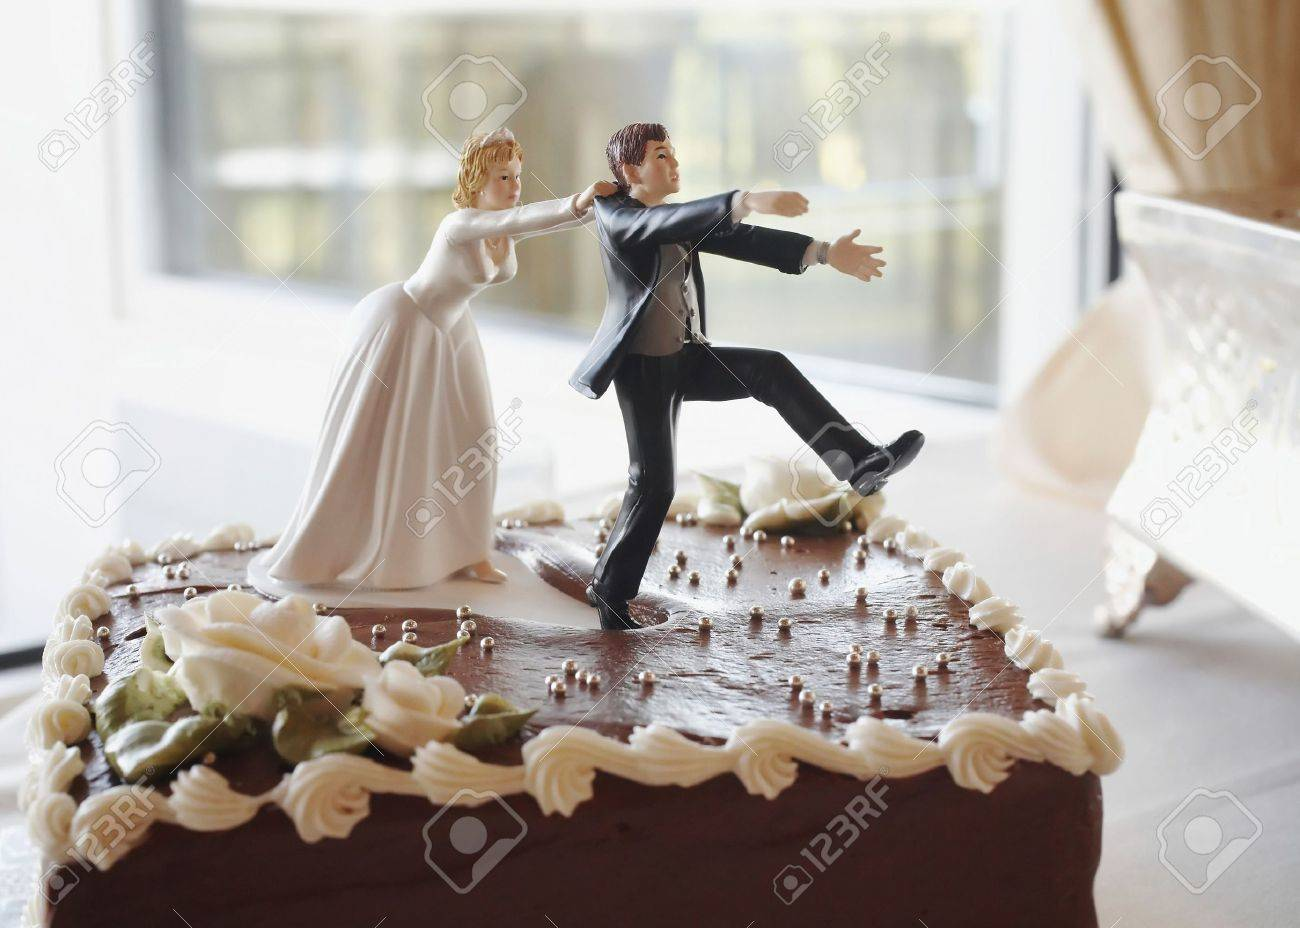 Funny wedding cake top bride chasing groom stock photo picture and funny wedding cake top bride chasing groom stock photo 3729946 junglespirit Images